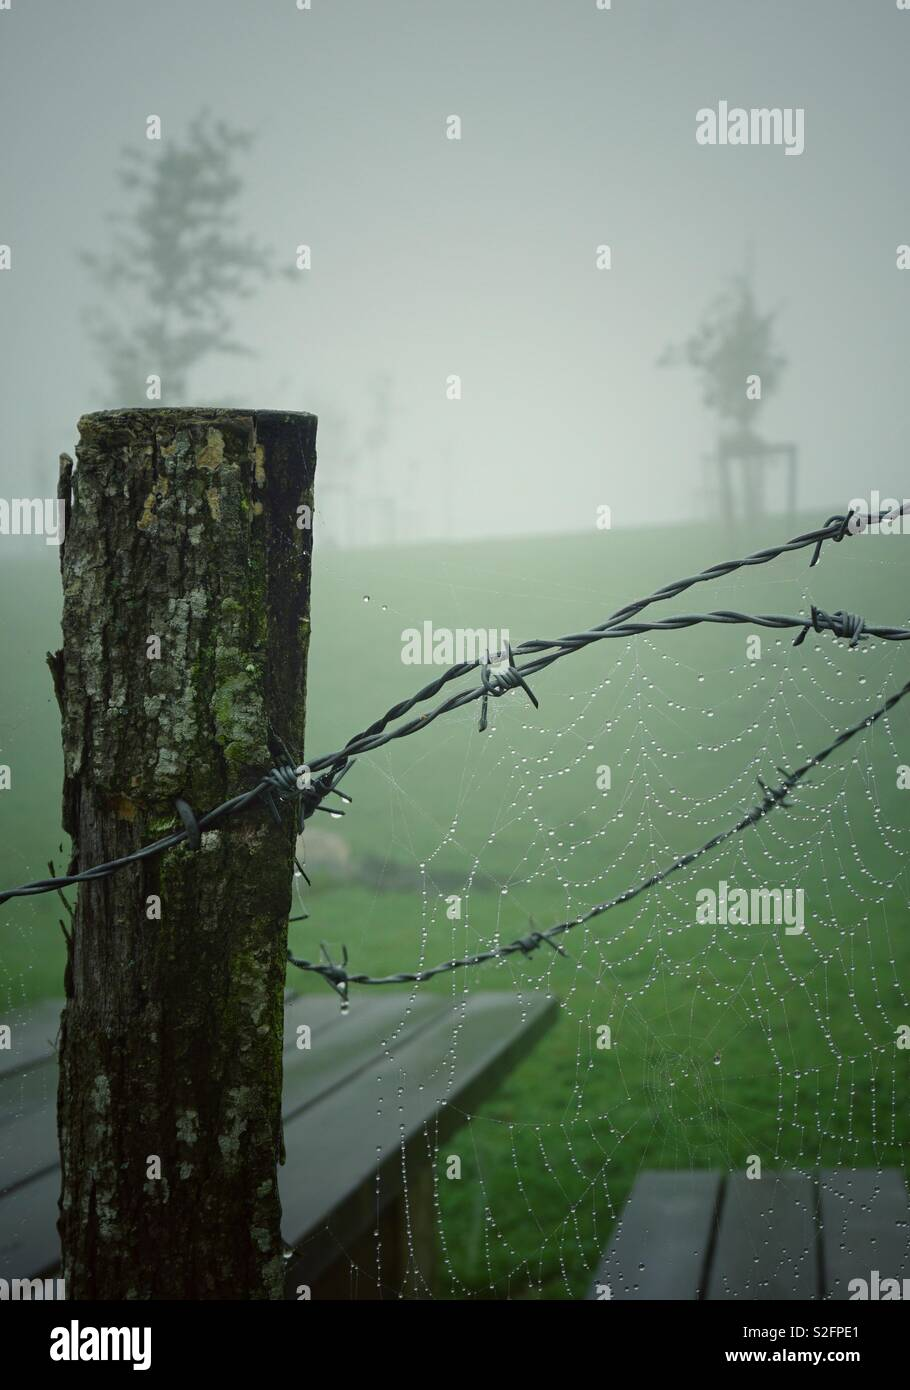 spider web in the barbwd wire fence - Stock Image